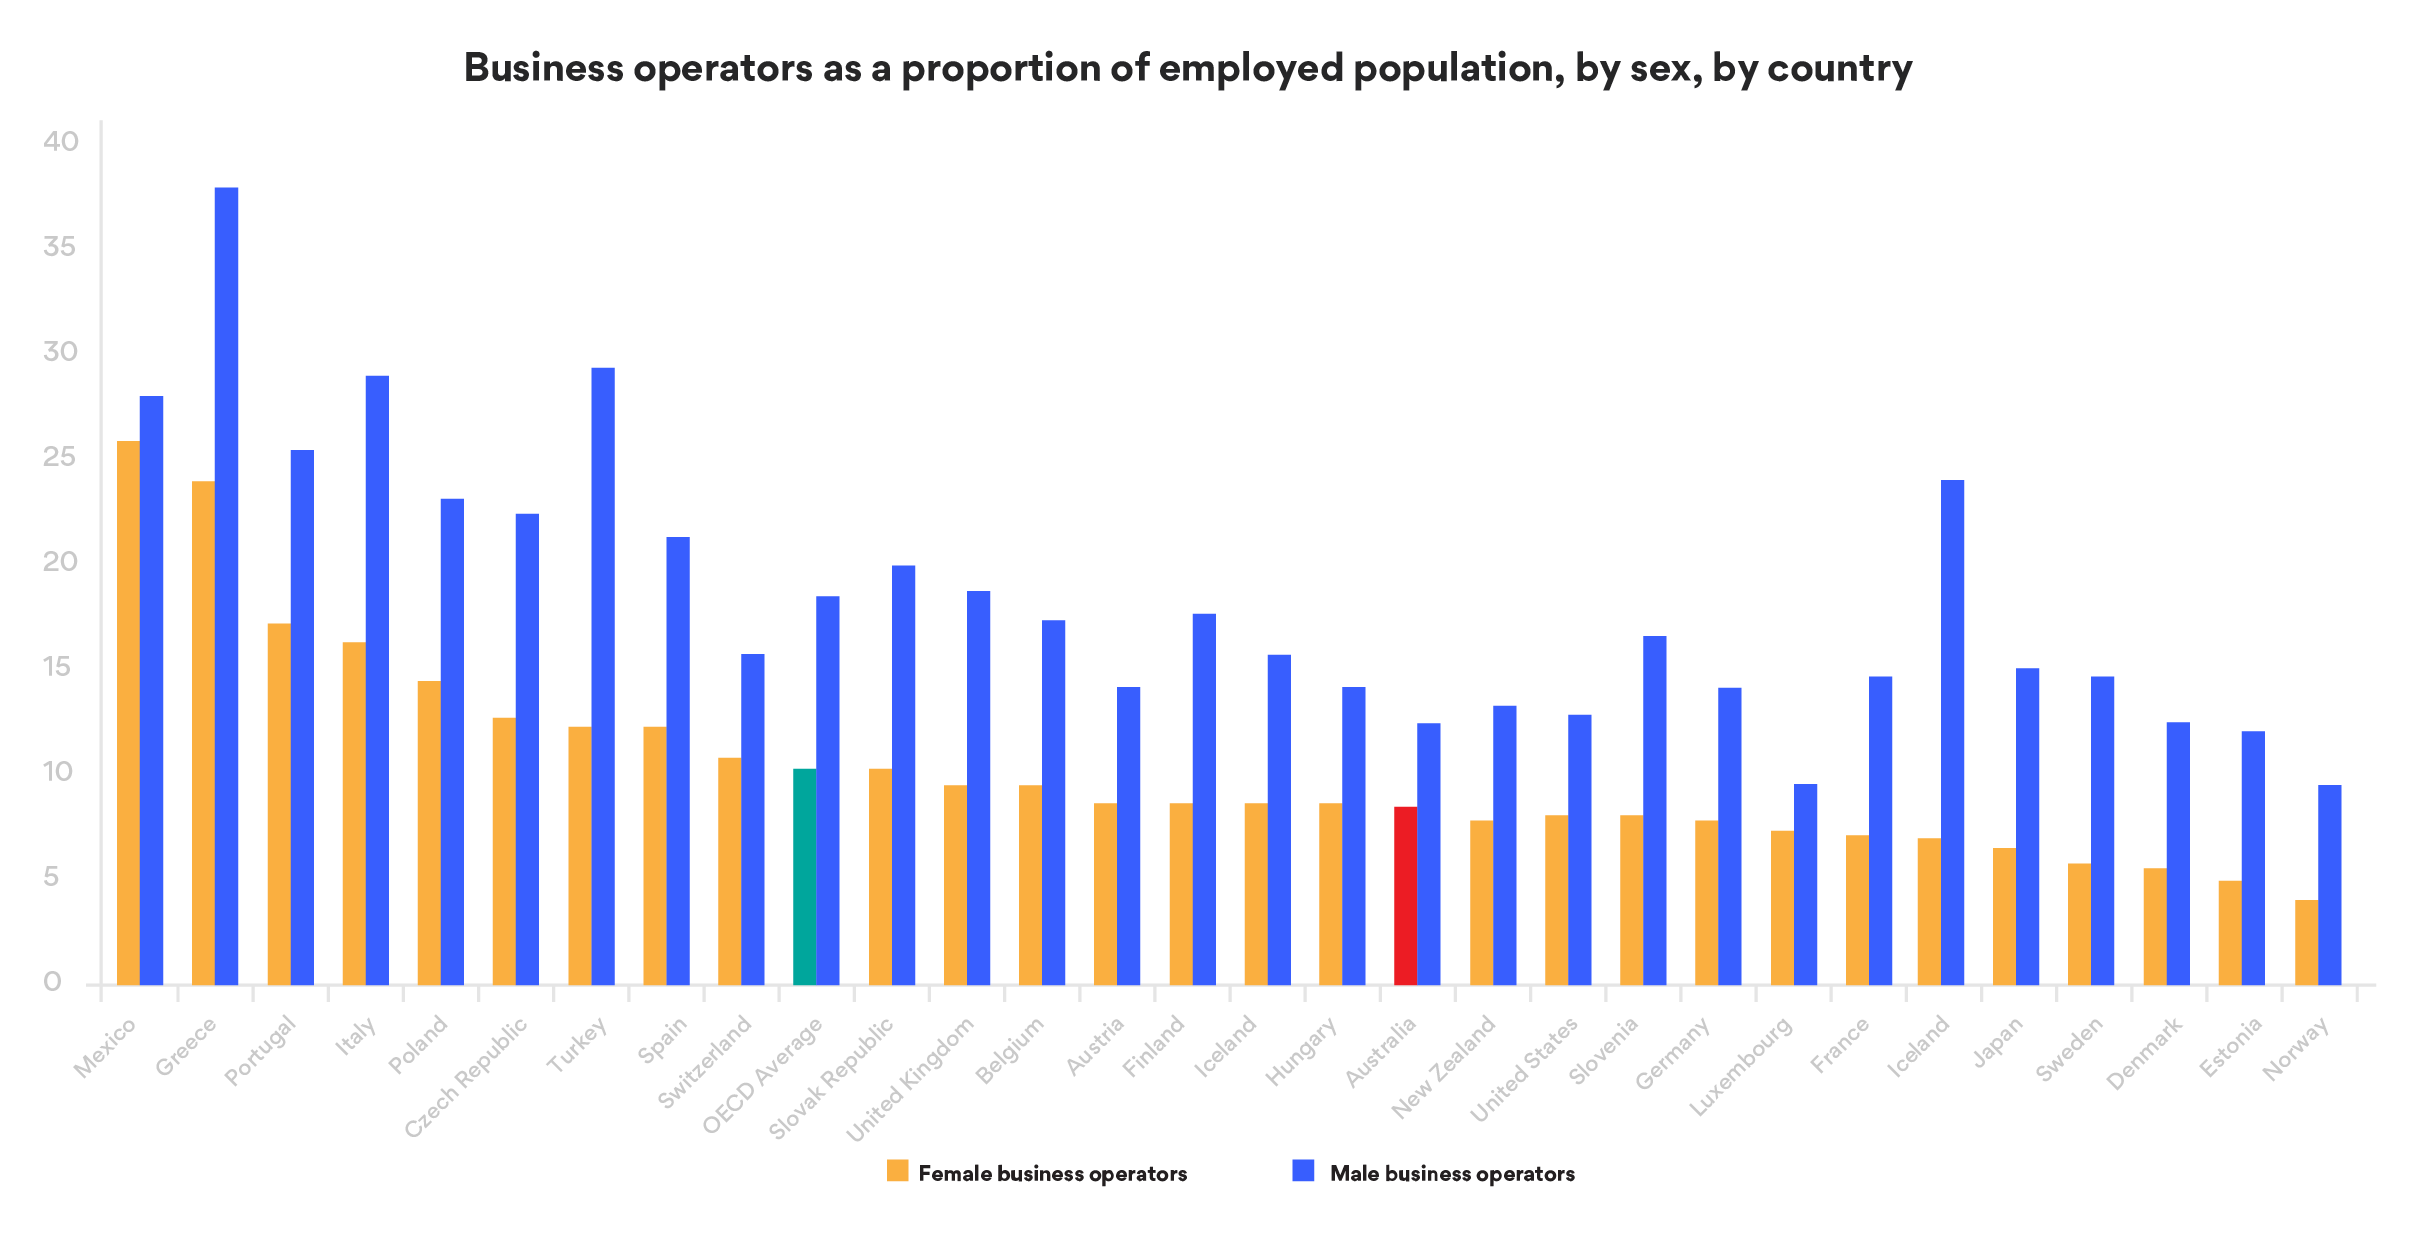 Women business operators as a proportion of employed population